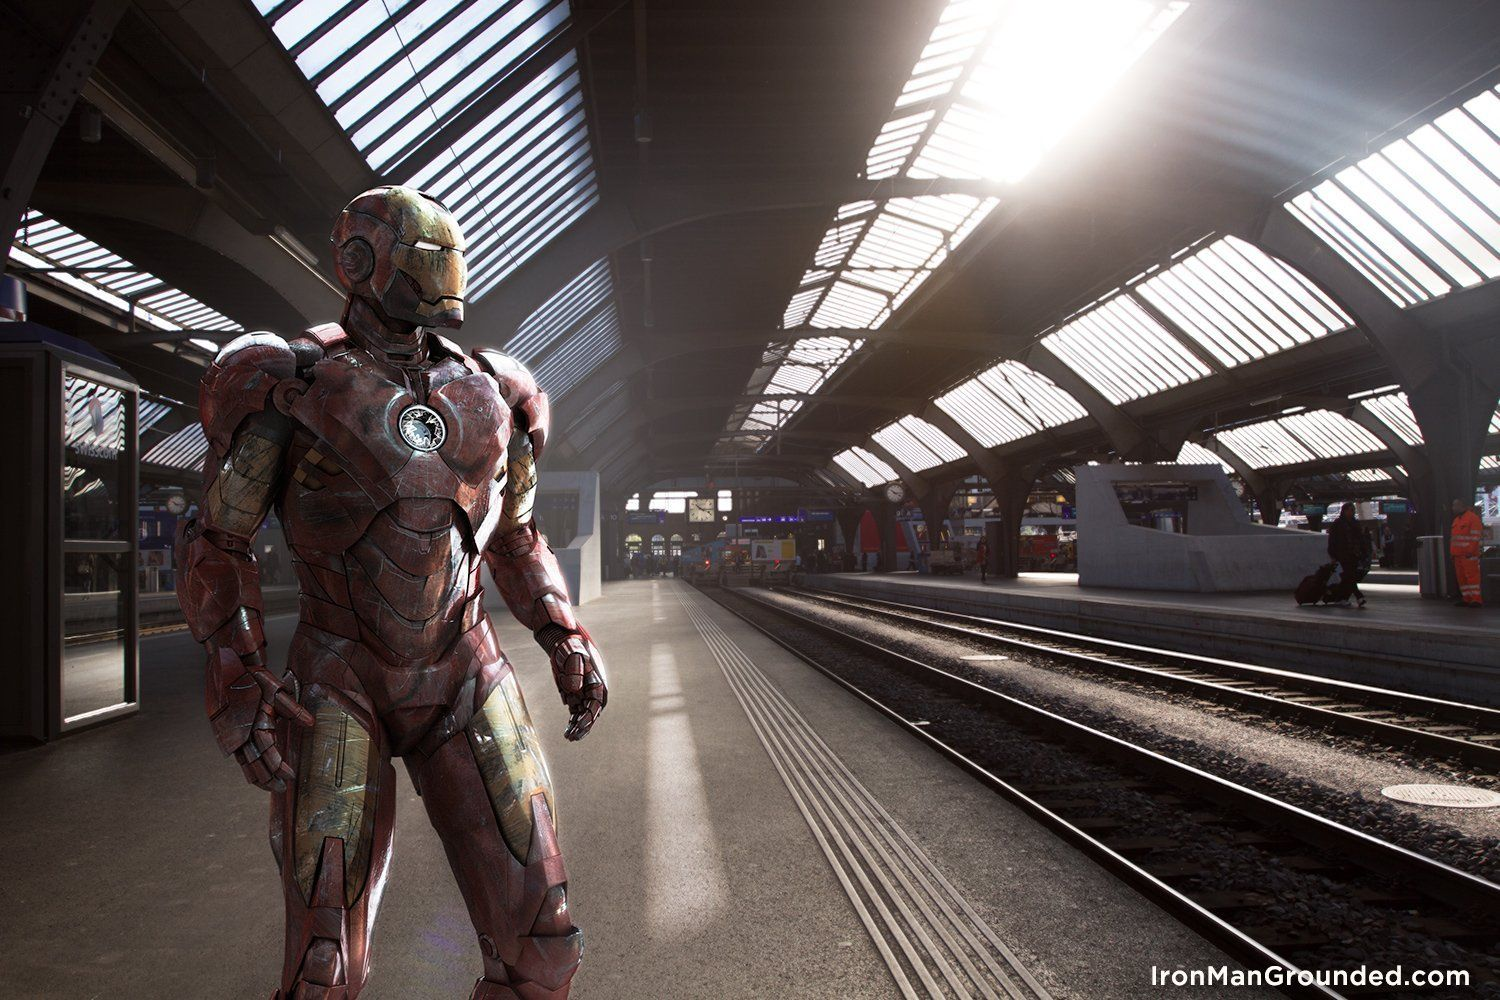 iron_man_grounded_train